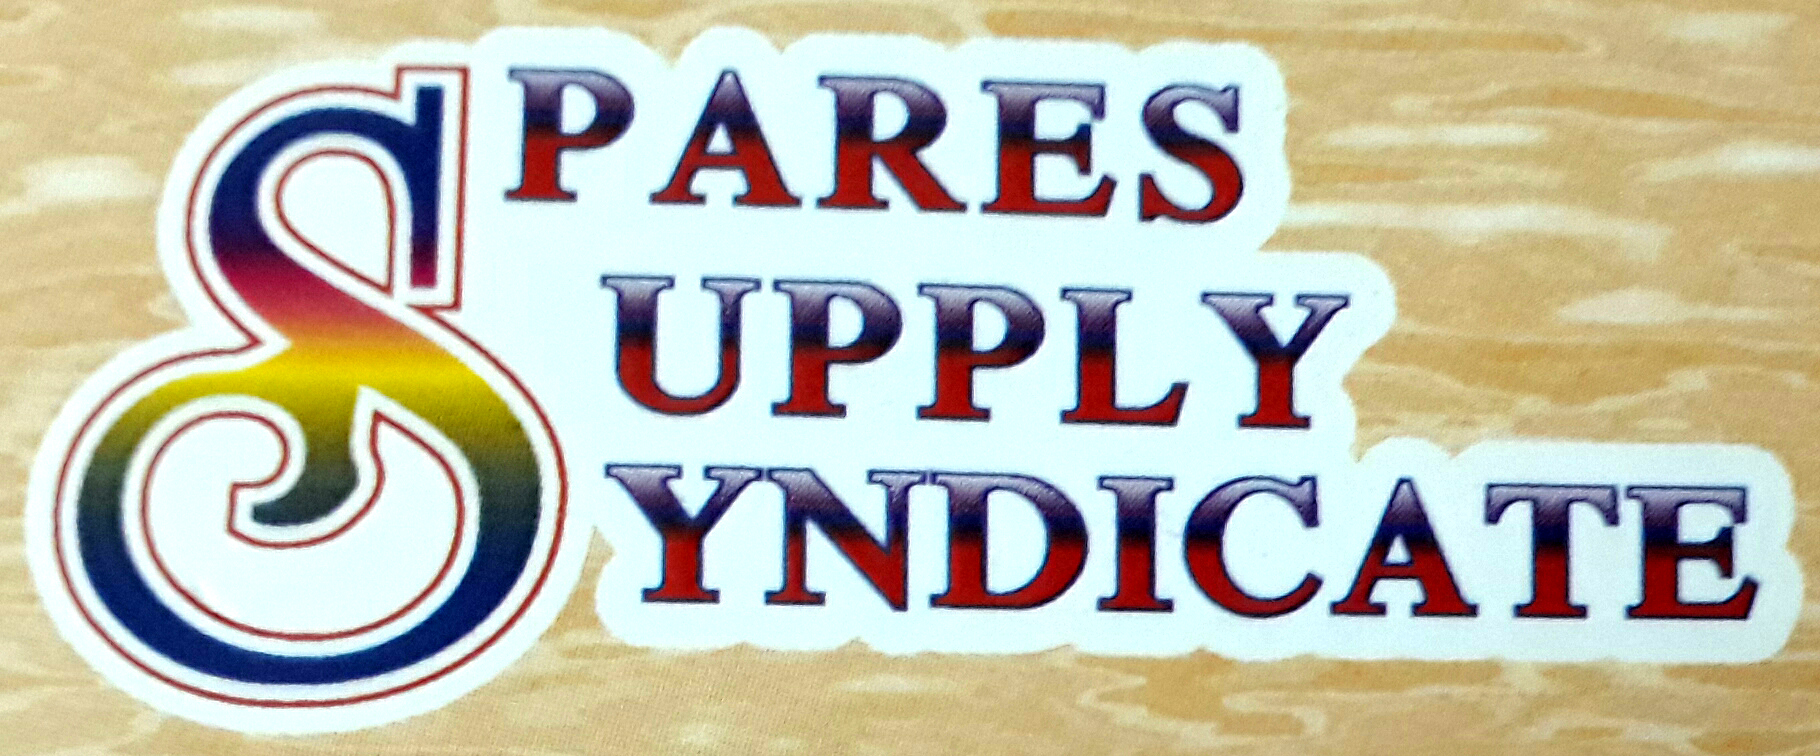 Spares Supply Syndicate